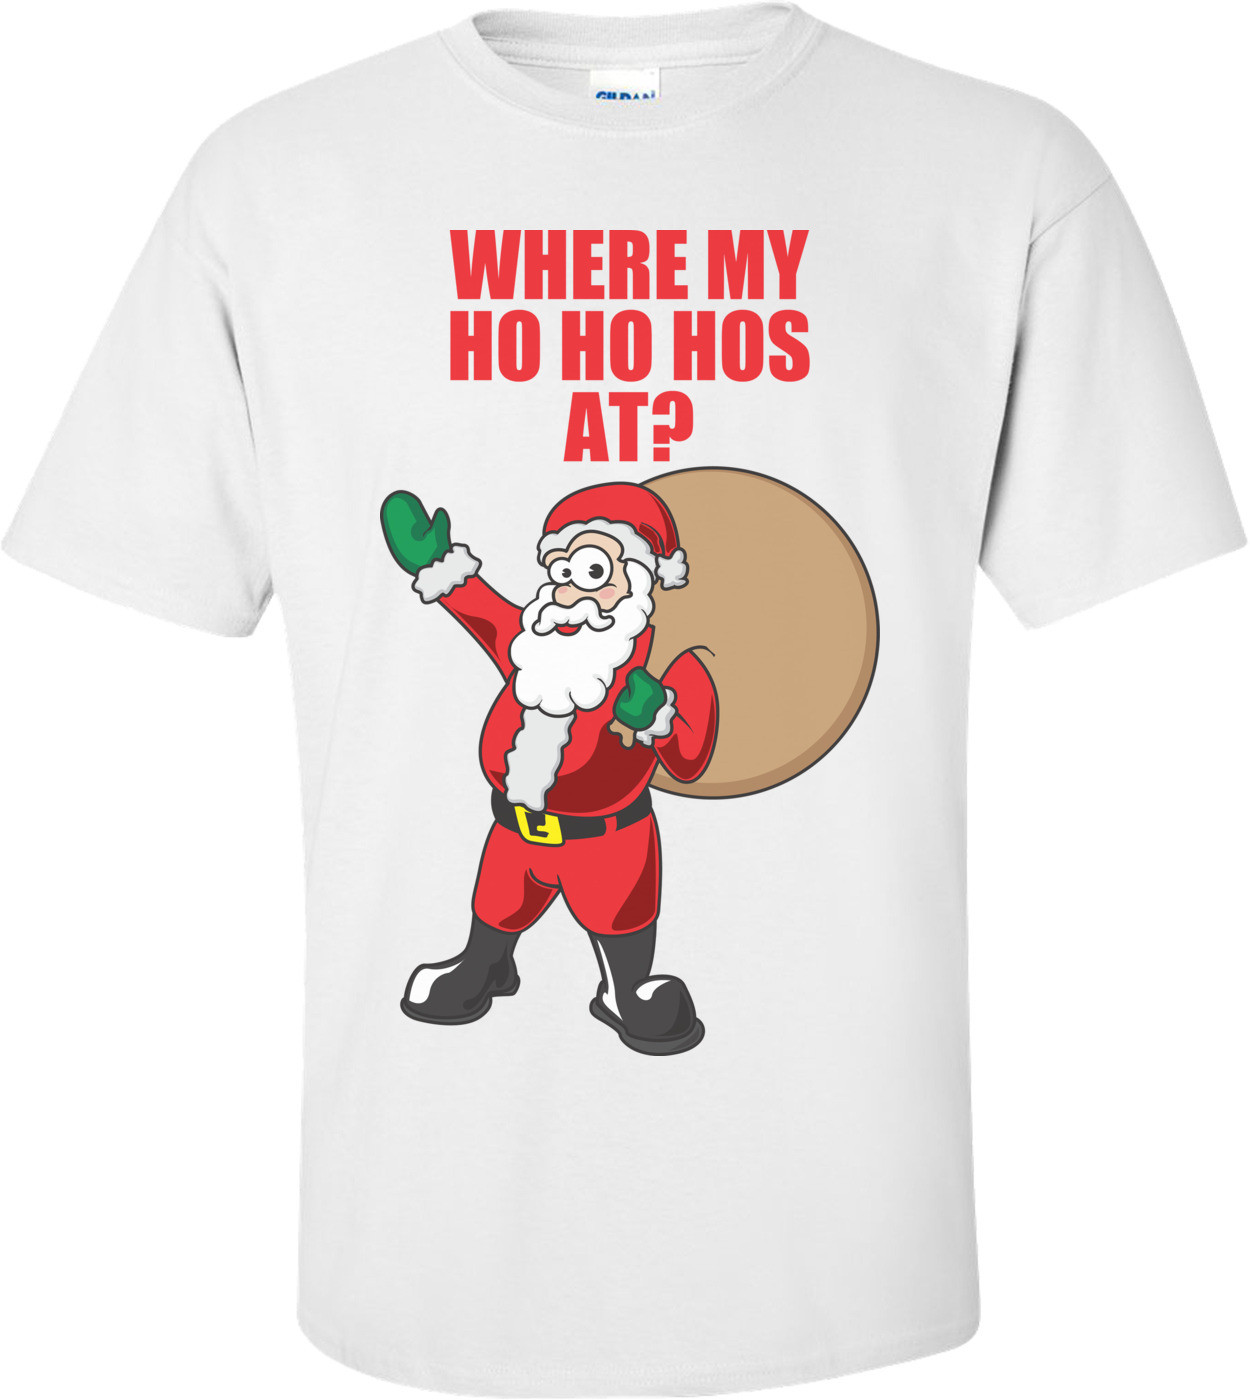 Where My Ho Ho Hos At? Christmas Shirt